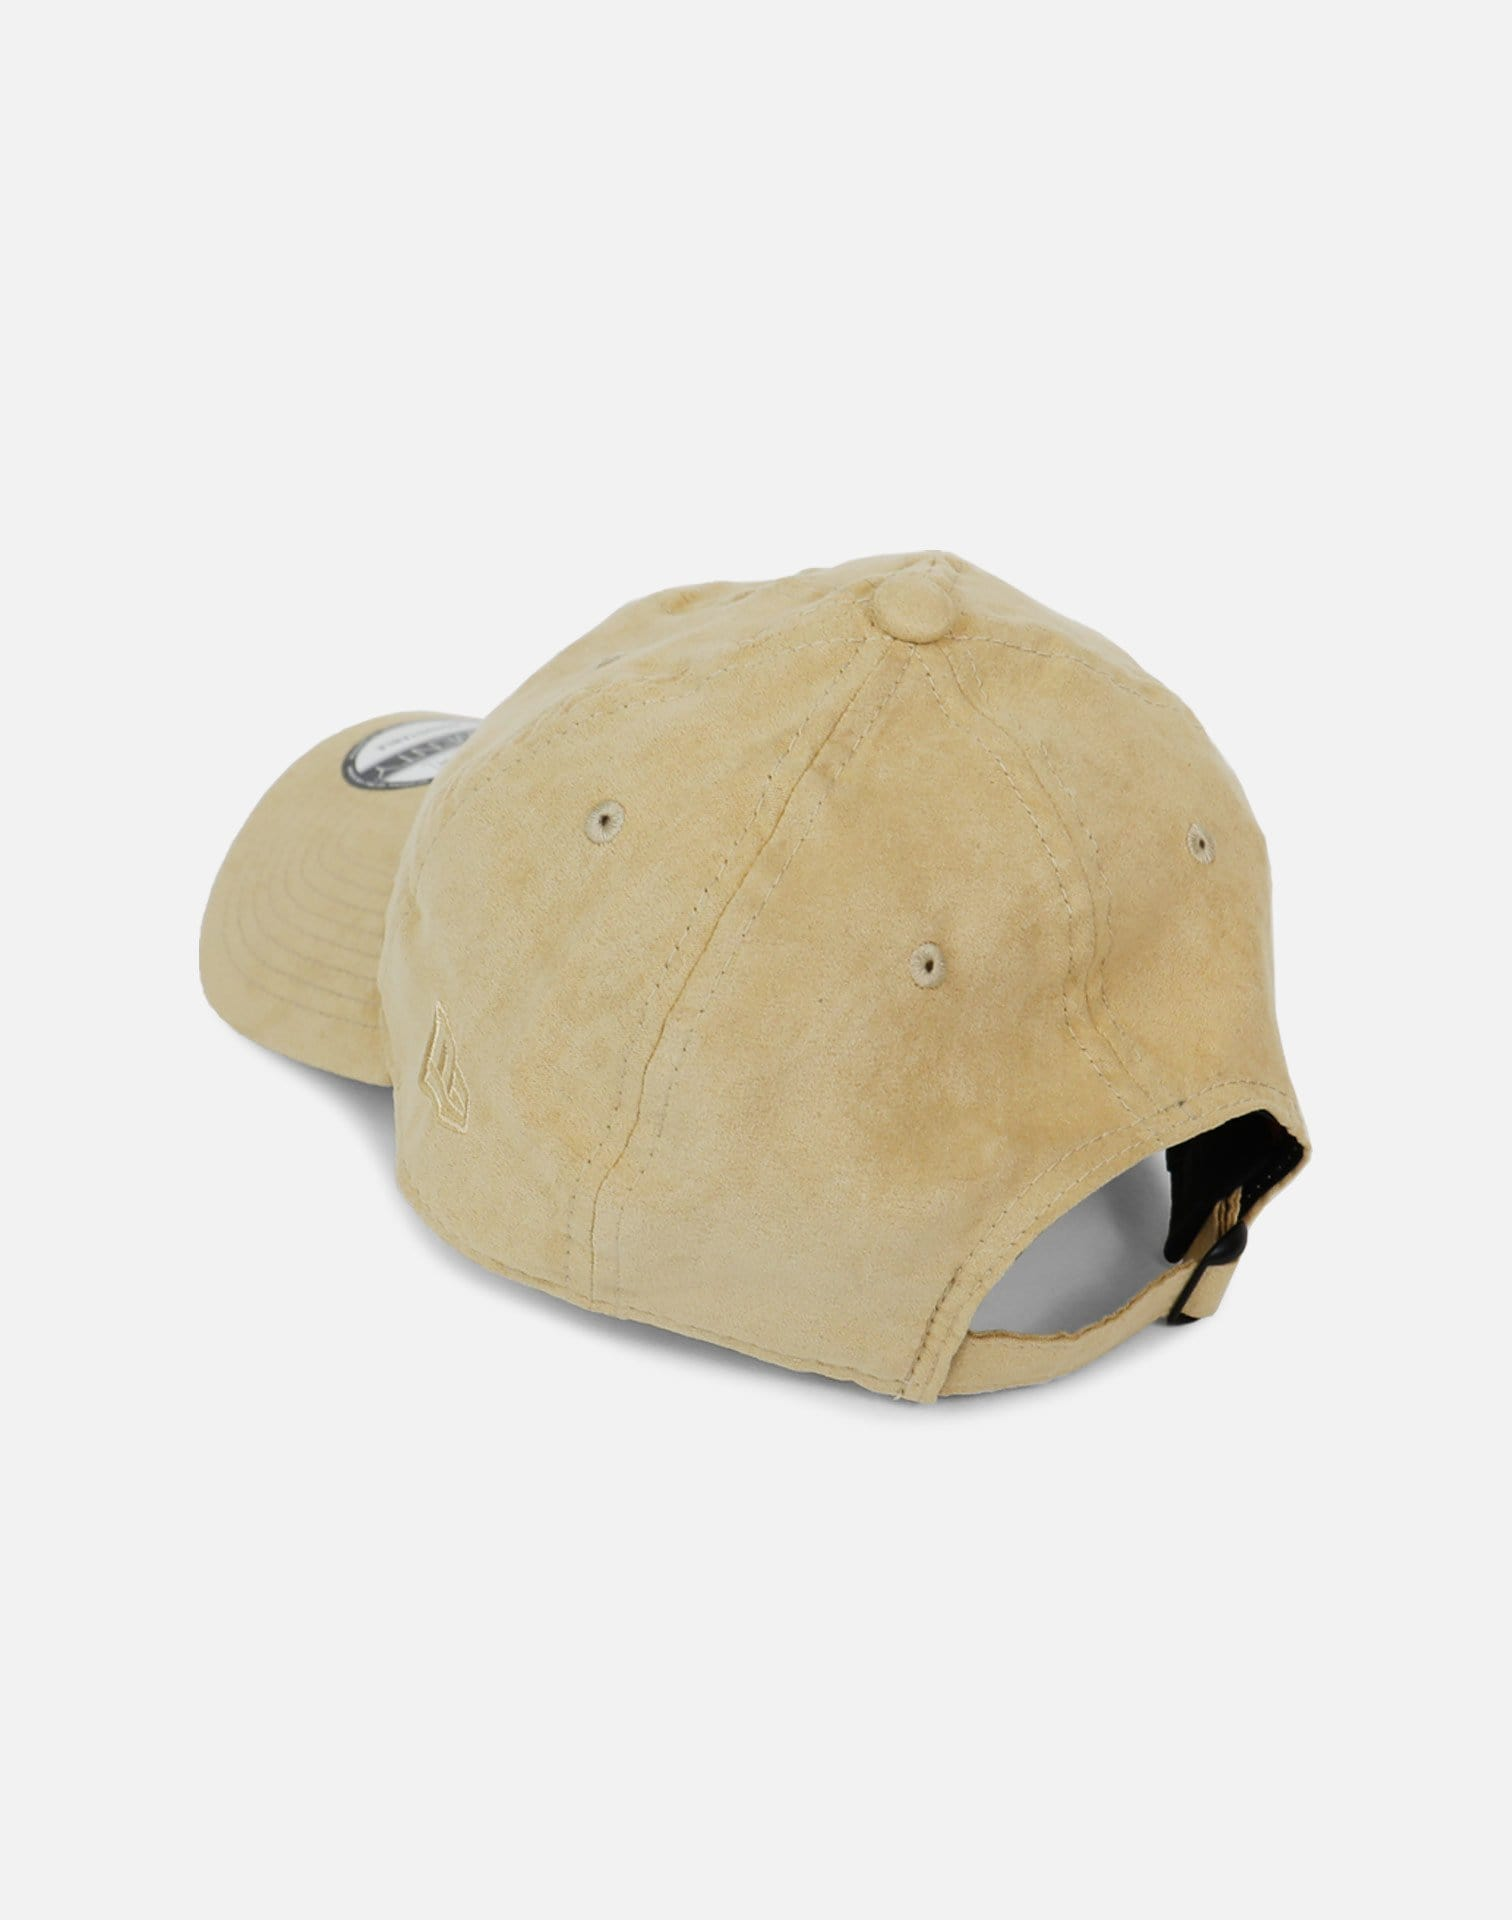 New Era Cleveland Cavaliers Stone Wash Suede Dad Hat (Tan)